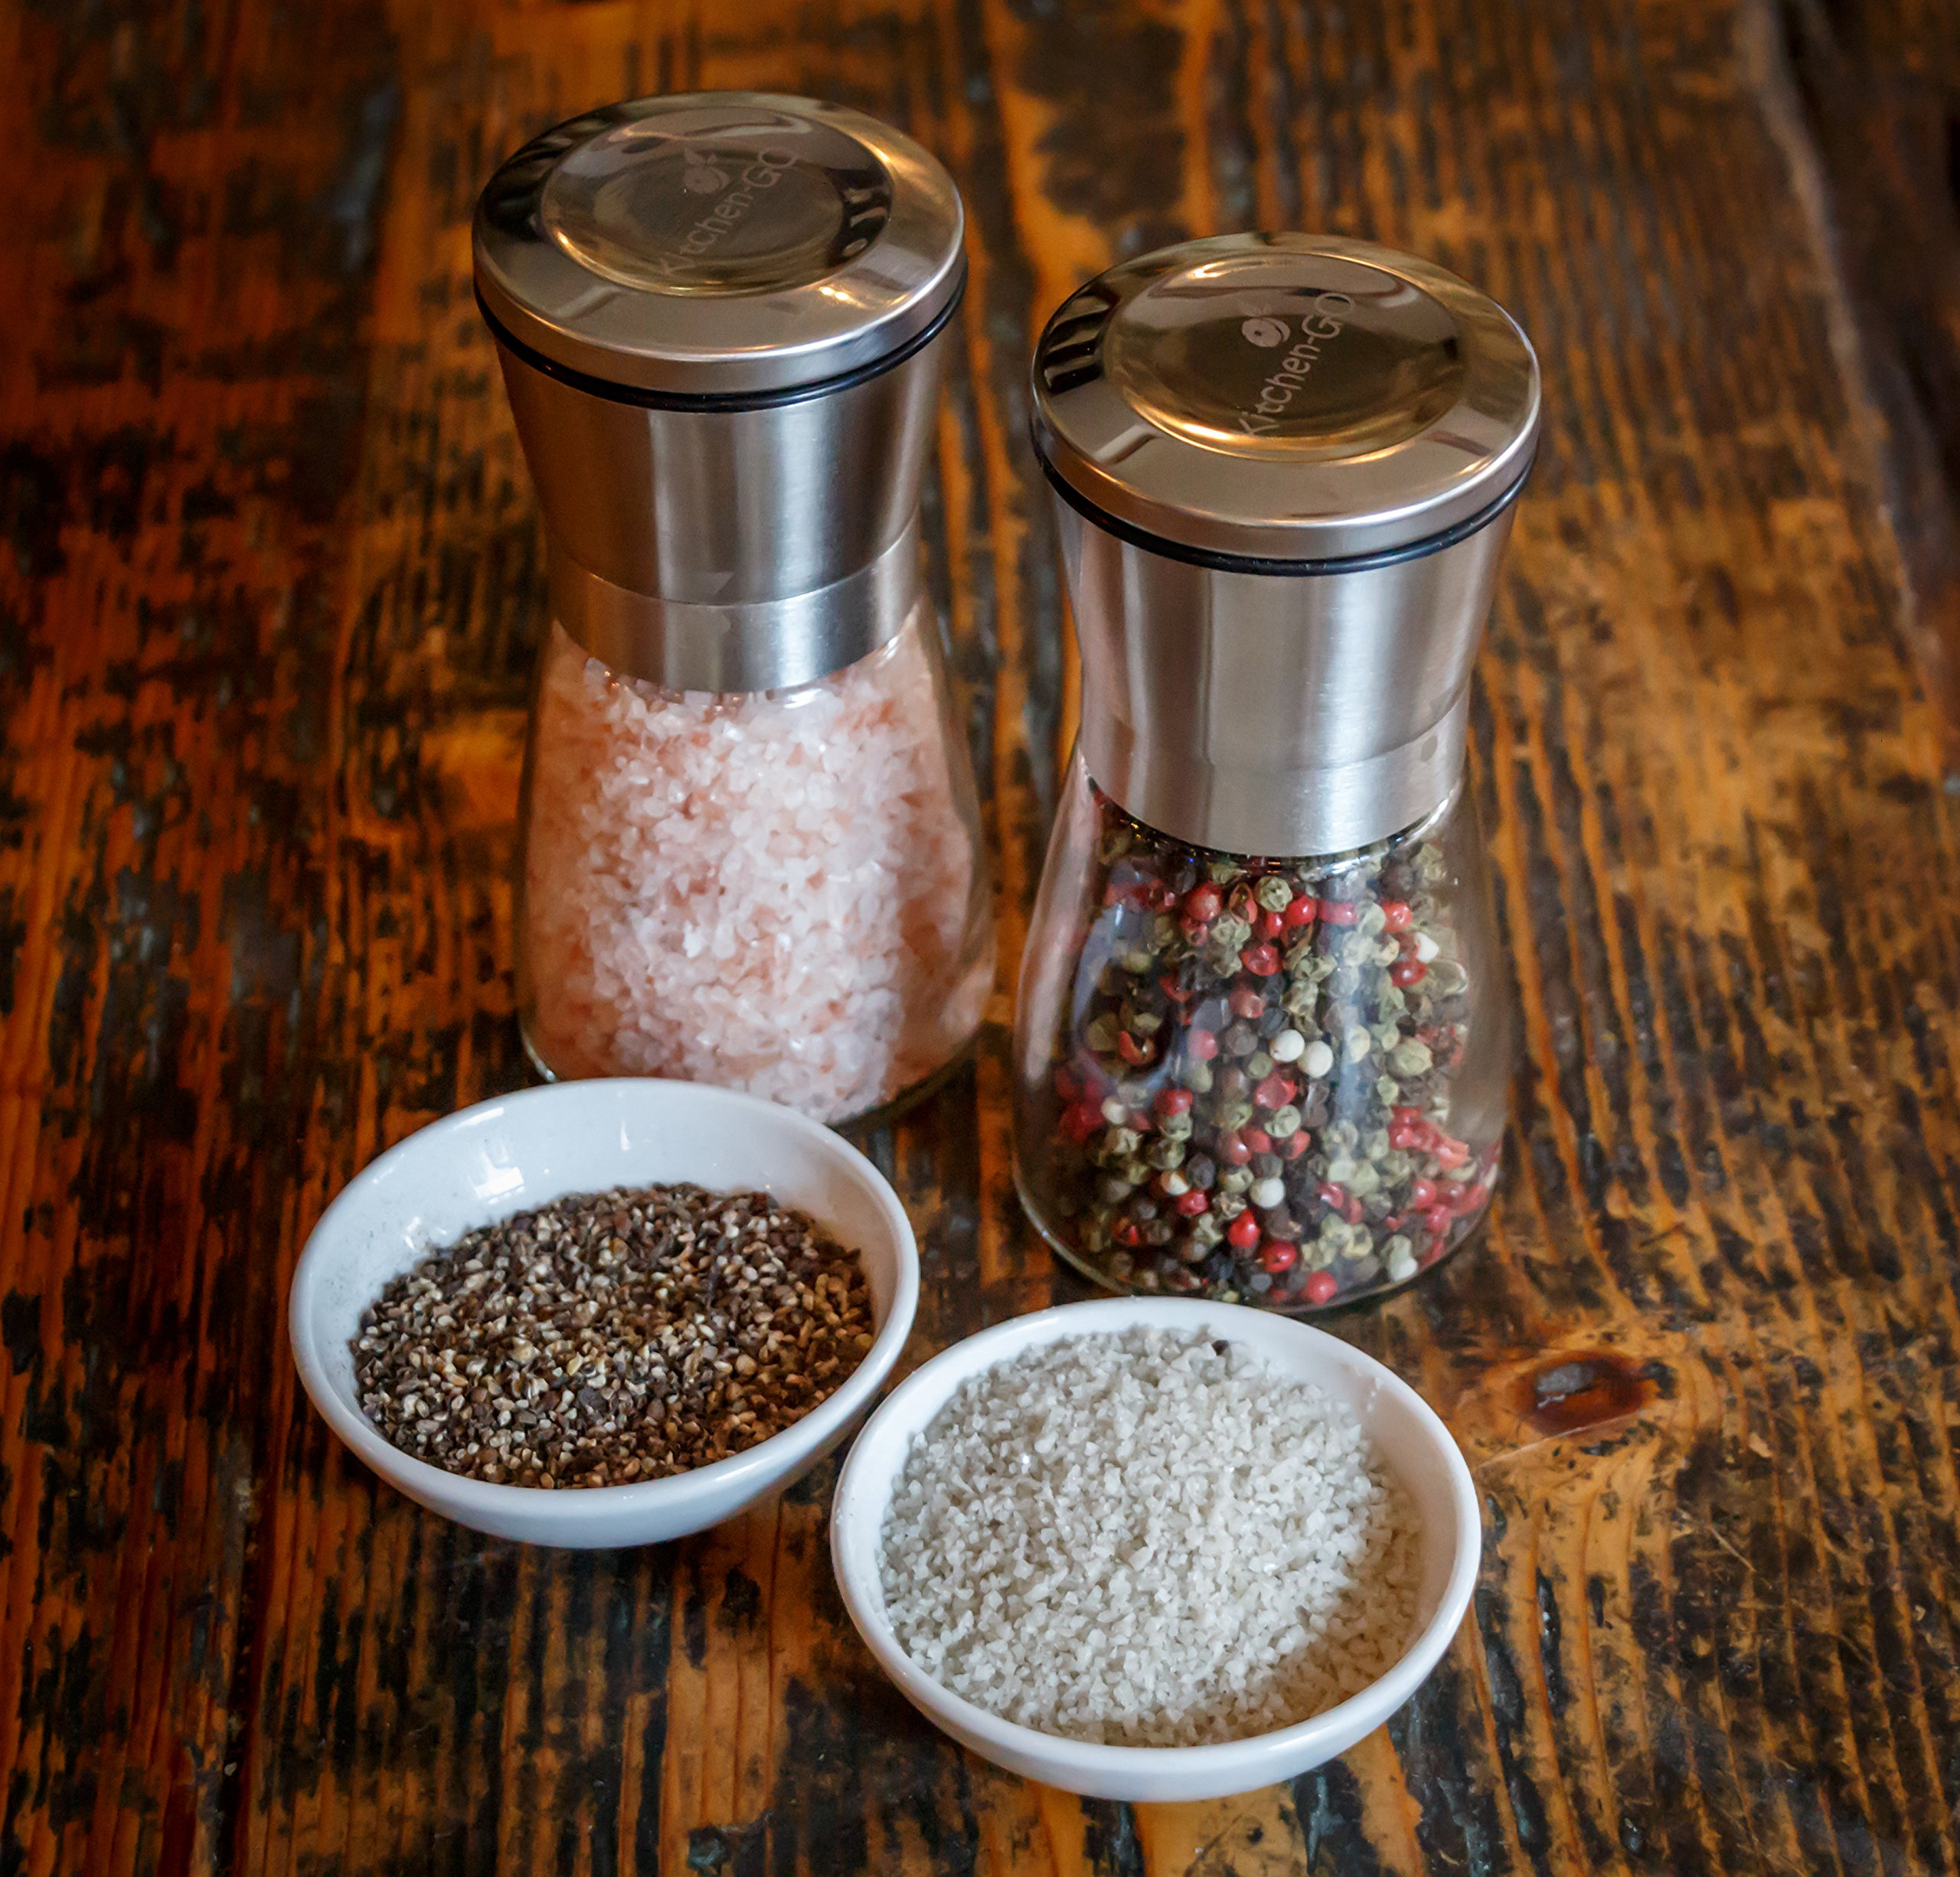 Salt and Pepper Grinder Set - Salt and Pepper Shakers for Professional Chef - Best Spice Mill with Brushed Stainless Steel, Special Mark, Ceramic Blades and Adjustable Coarseness by Kitchen-GO (Image #4)